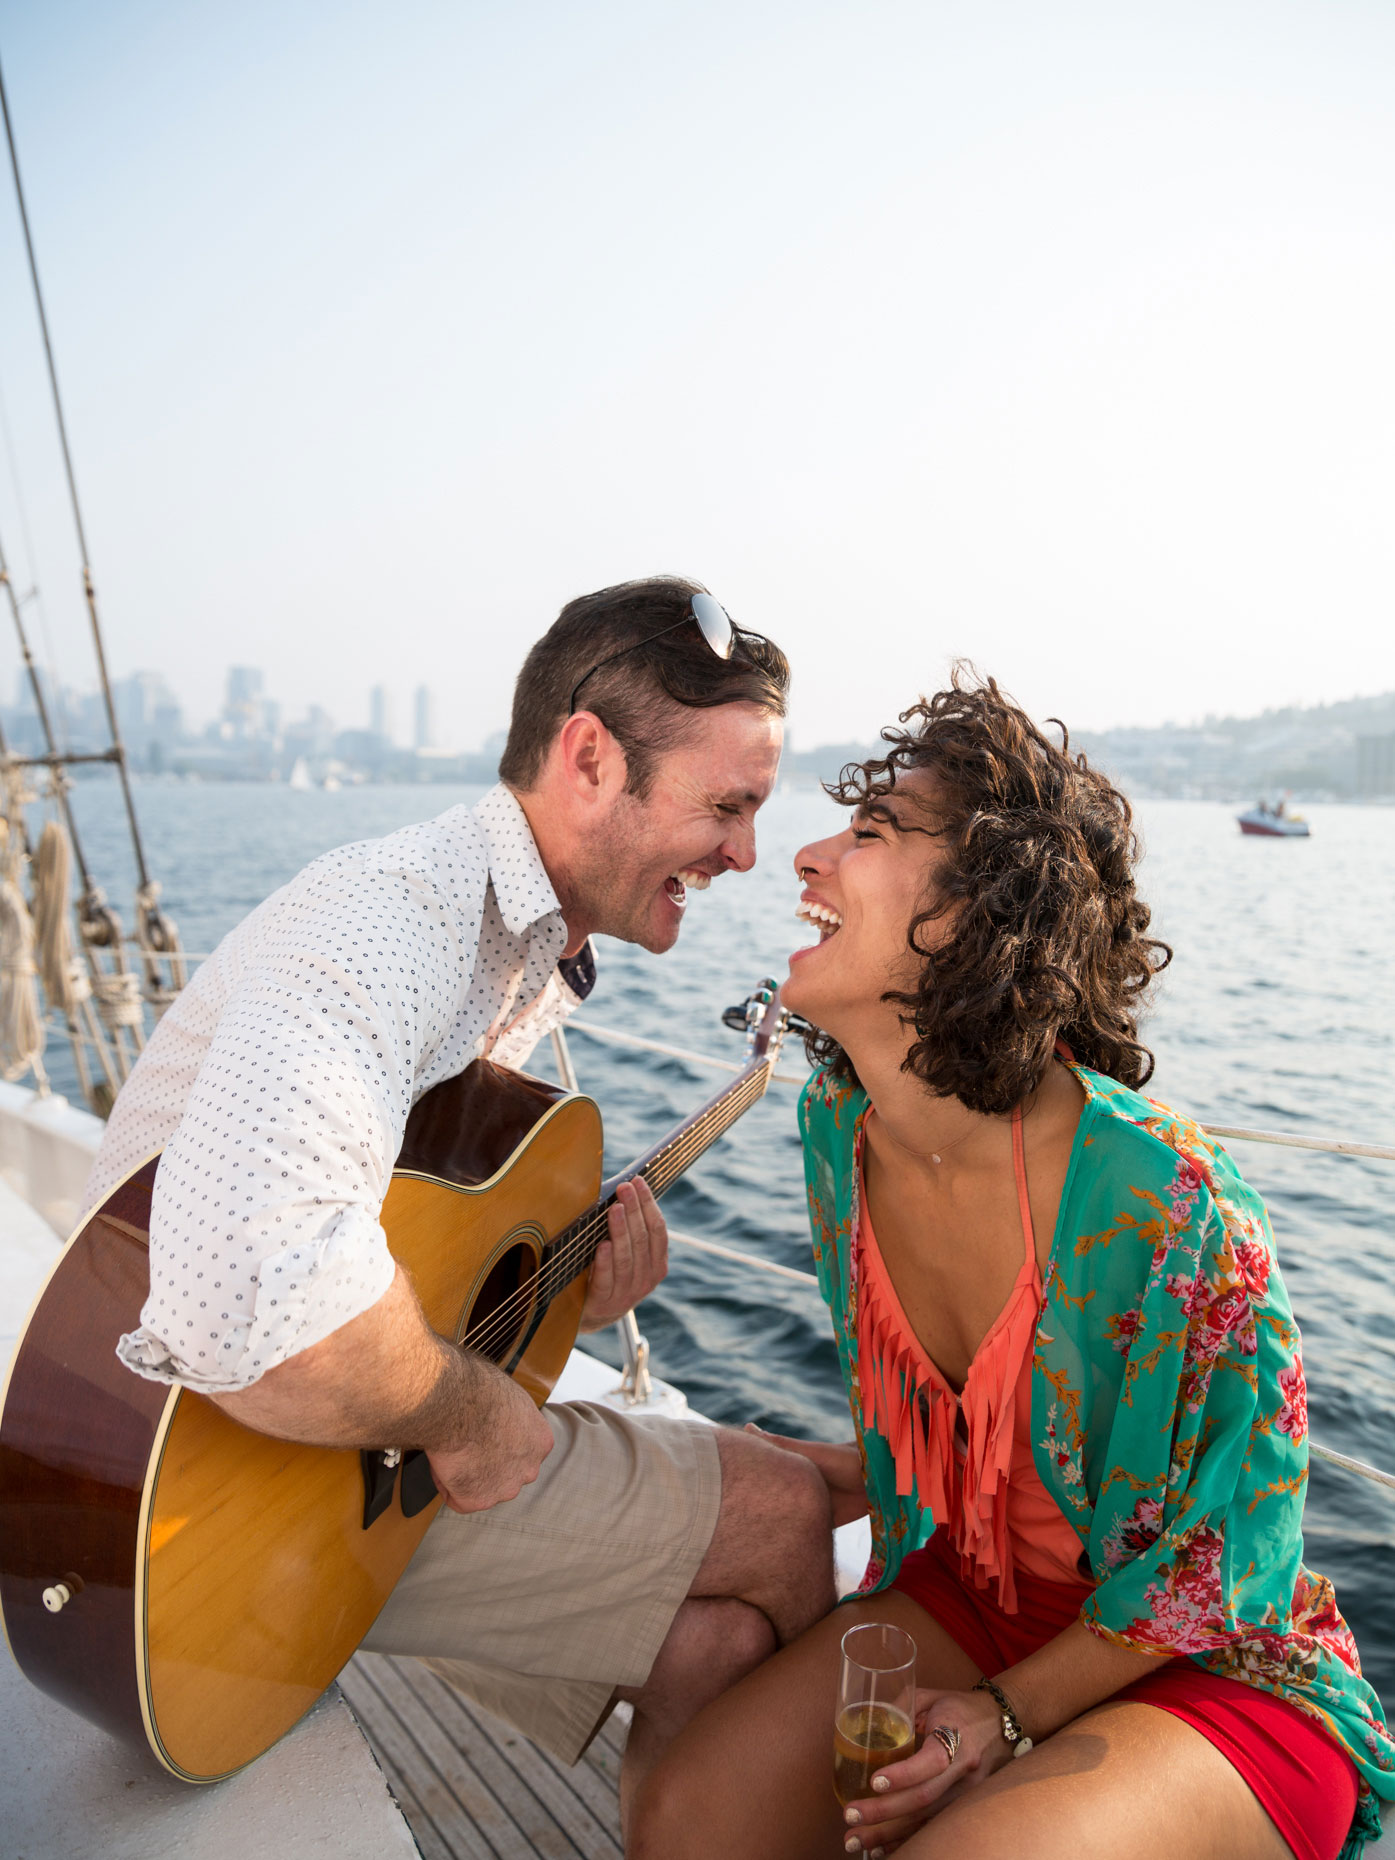 Laughing couple on sailboat